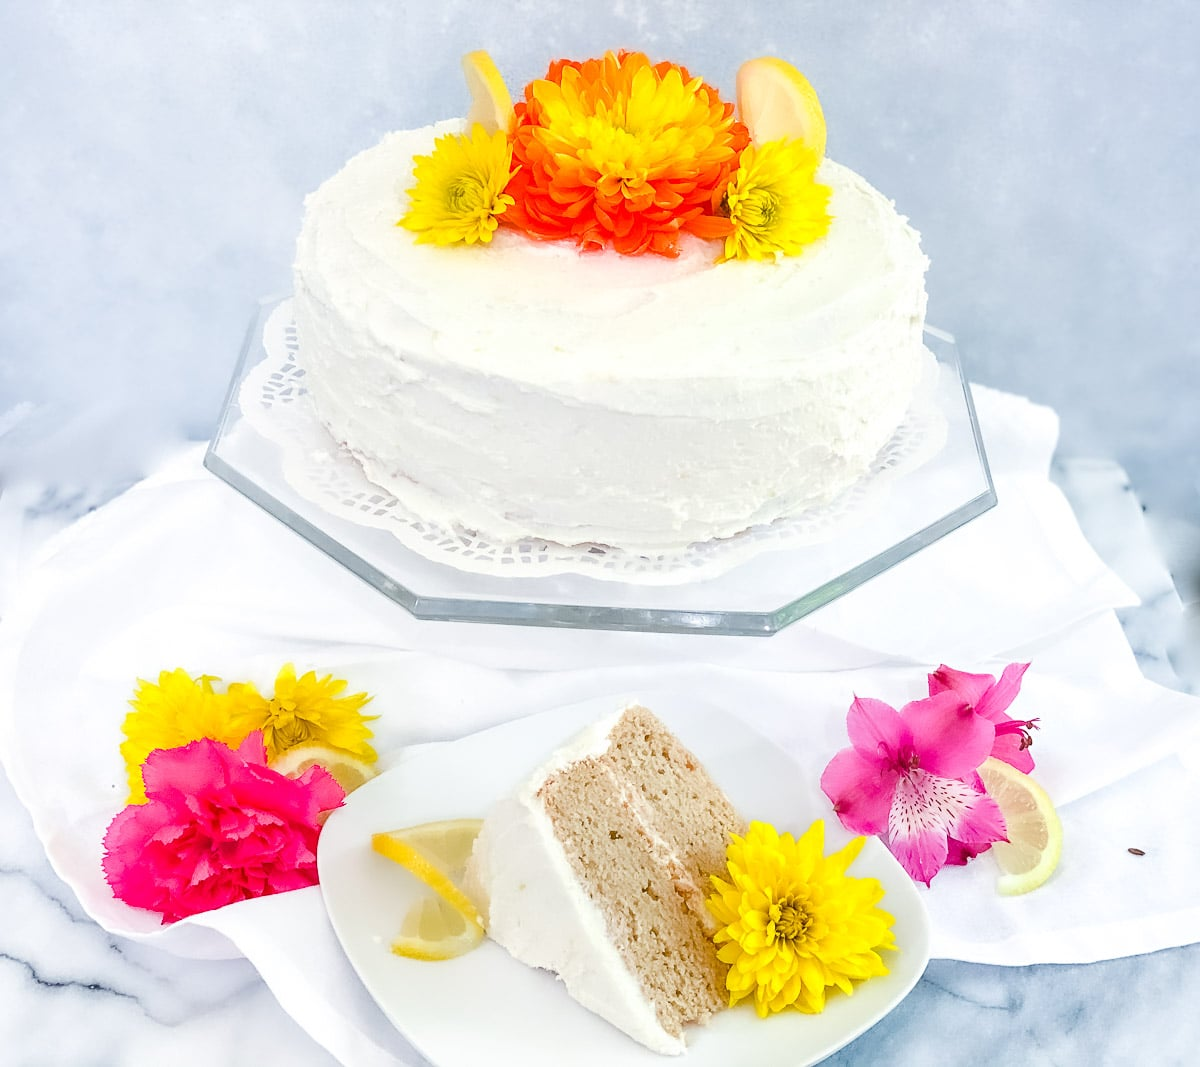 Gluten free lemon cake on a glass plate with flowers and fresh slices of lemon.